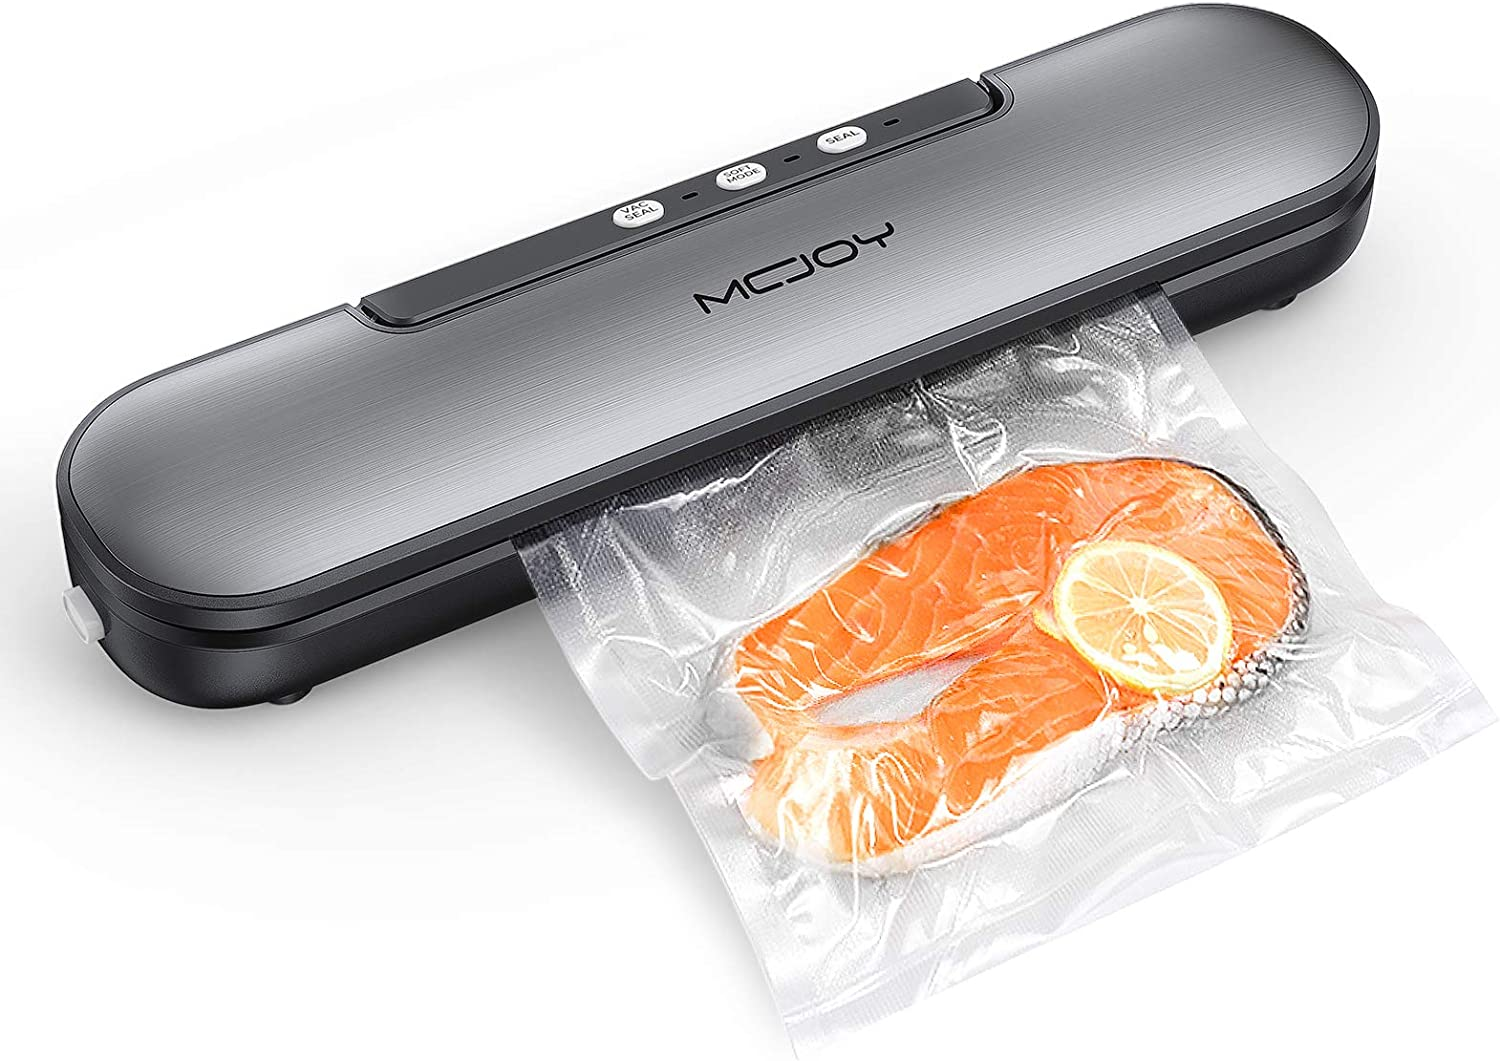 MCJOY Vacuum Sealer Machine, Automatic Operation Vacuum Air Sealing For Food Preservation System, Led Indicator Lights, Compact Design And Easy Clean, 10 Bags (Gray)